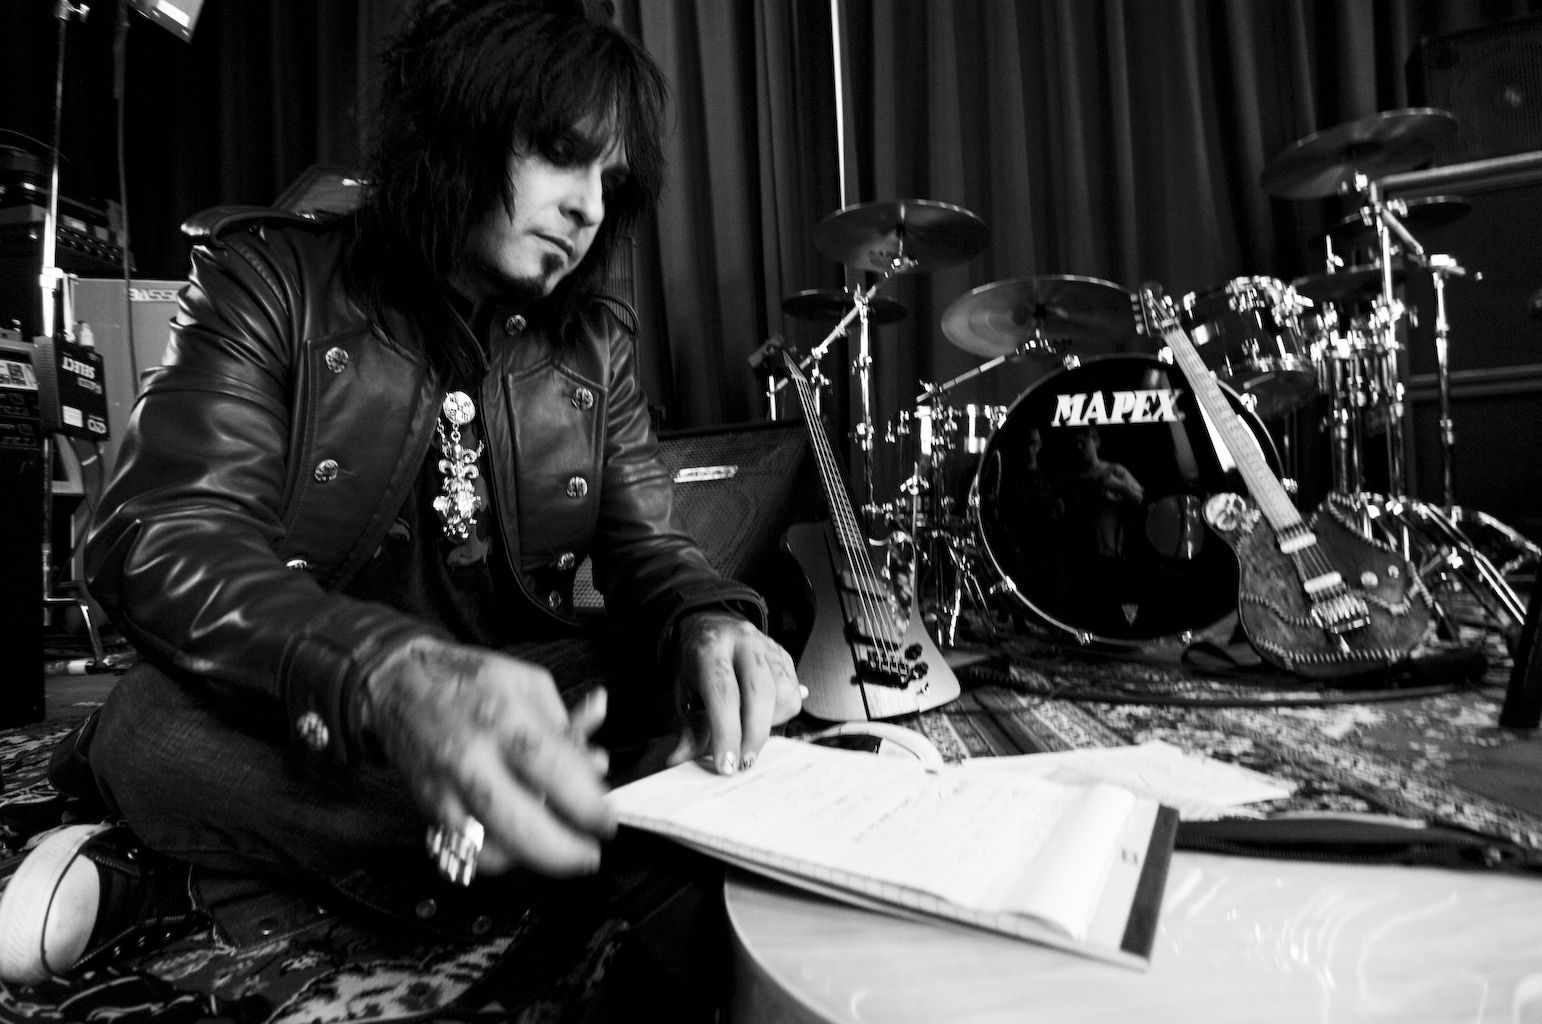 Nikki Sixx - 12 Apr 2007 - Main Songwriter of the Crue